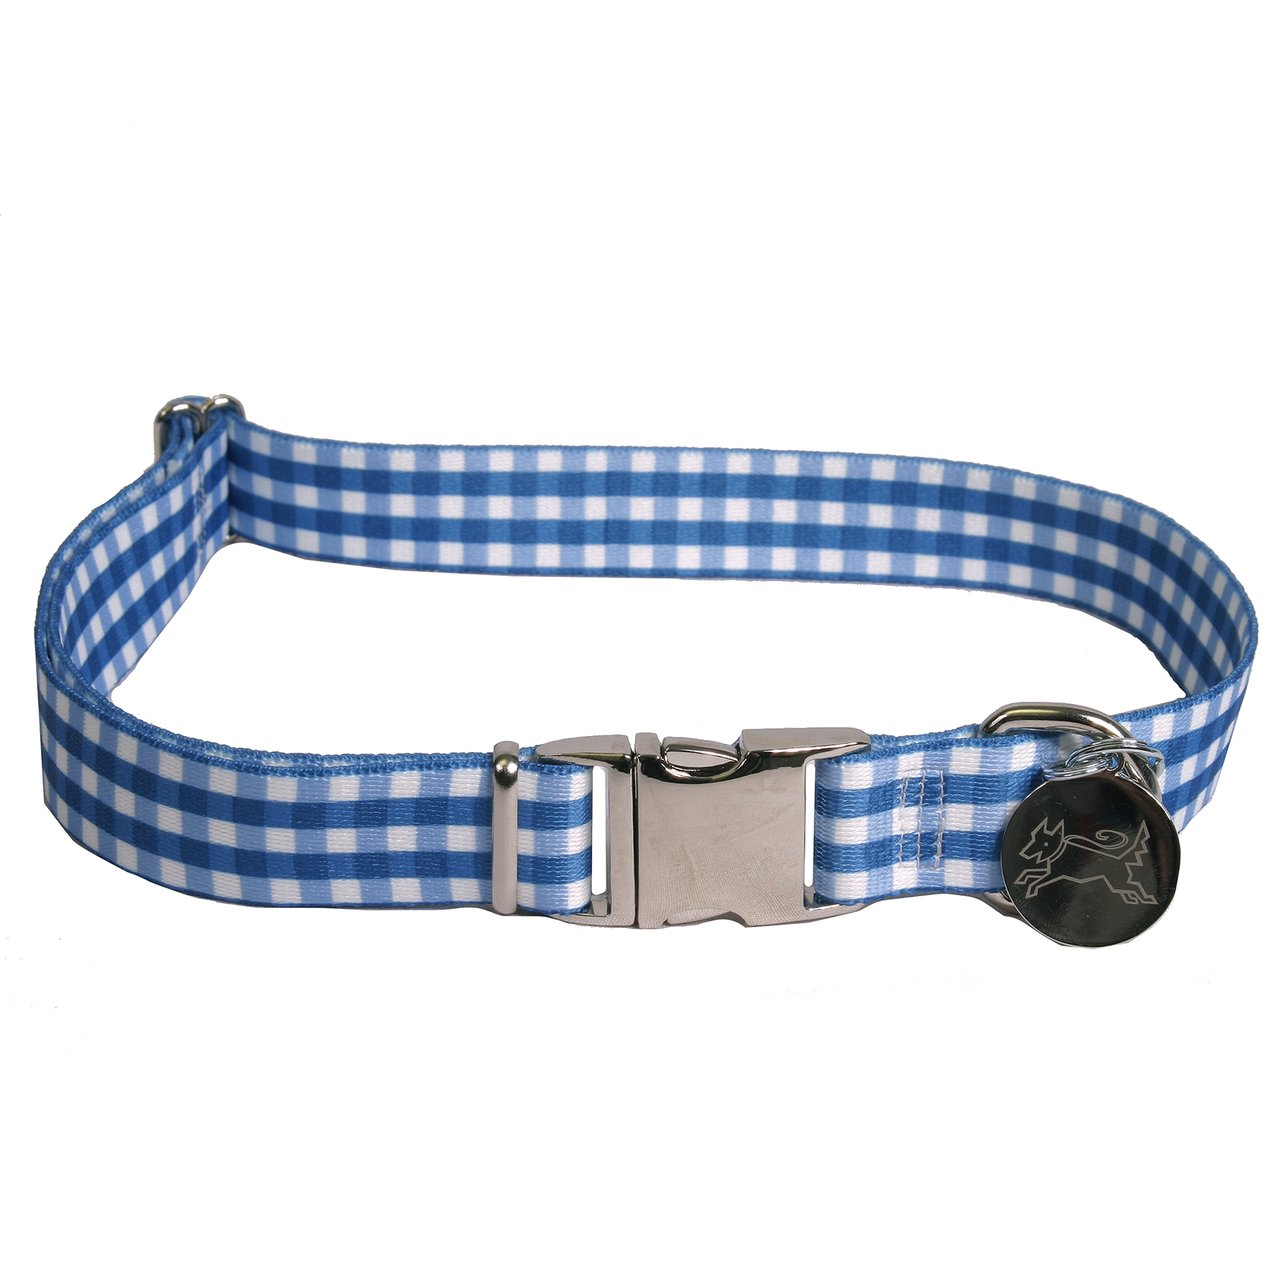 Yellow Dog Design Southern Dawg Gingham Navy Blue Dog Collar -Extra small-1'' Neck 8 to 12'' Made in the USA by